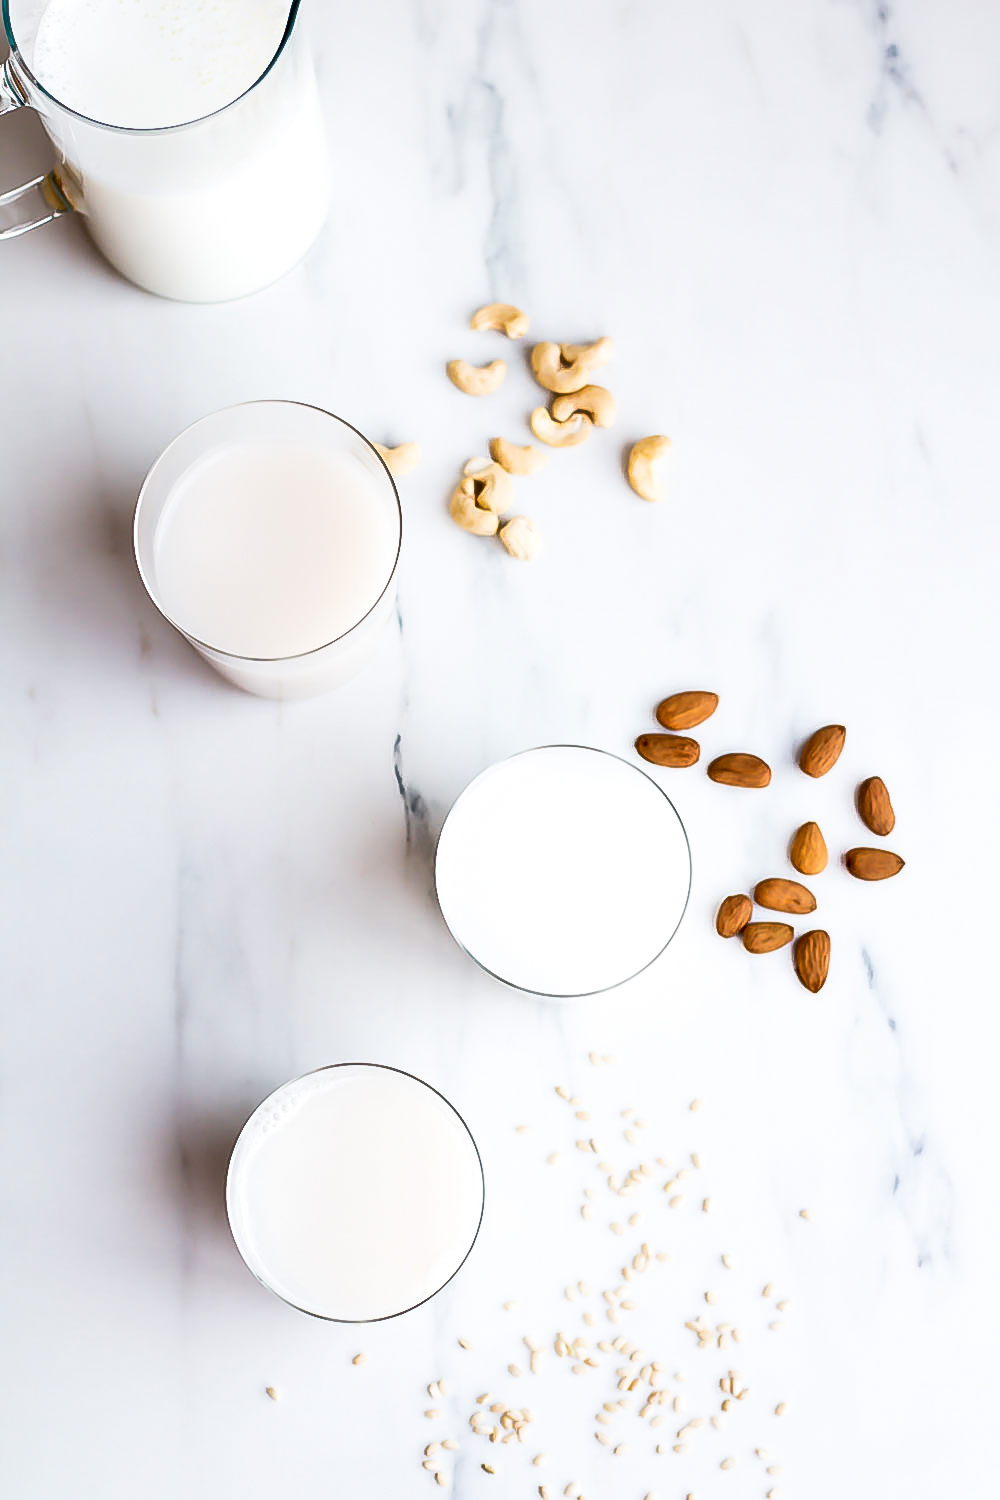 These homemade plant-based milk recipes are perfect for vegan, lactose-intolerant, or if you just want to change up your routine and add more flavor and healthy nutrients to your diet! https://www.spotebi.com/recipes/healthy-plant-based-milks/